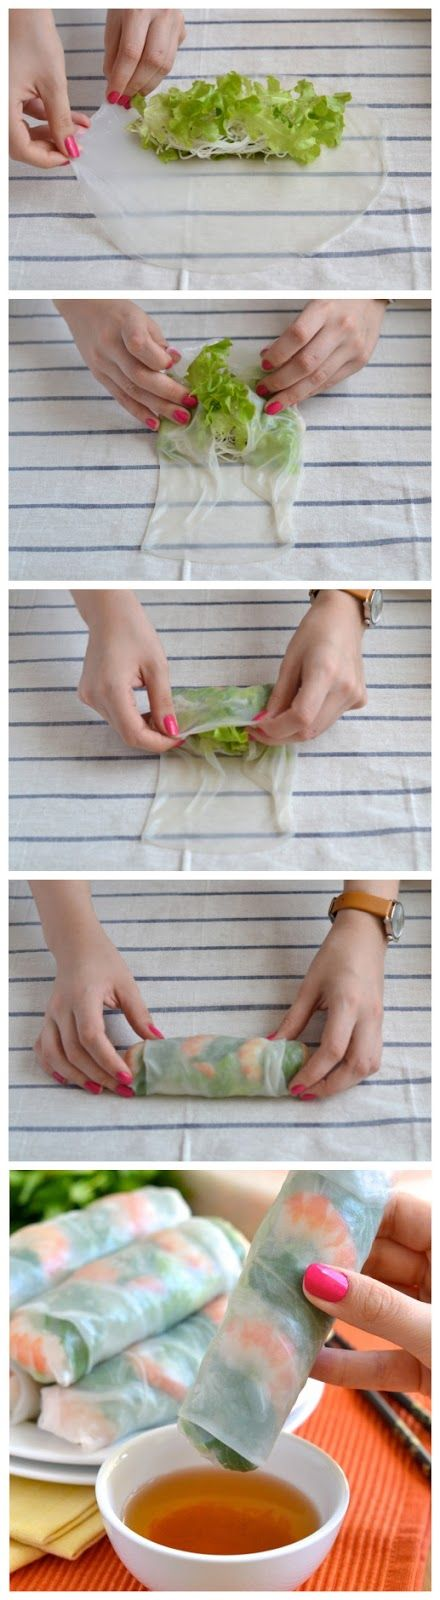 How to Make Vietnamese Fresh Spring Rolls – Step by Step